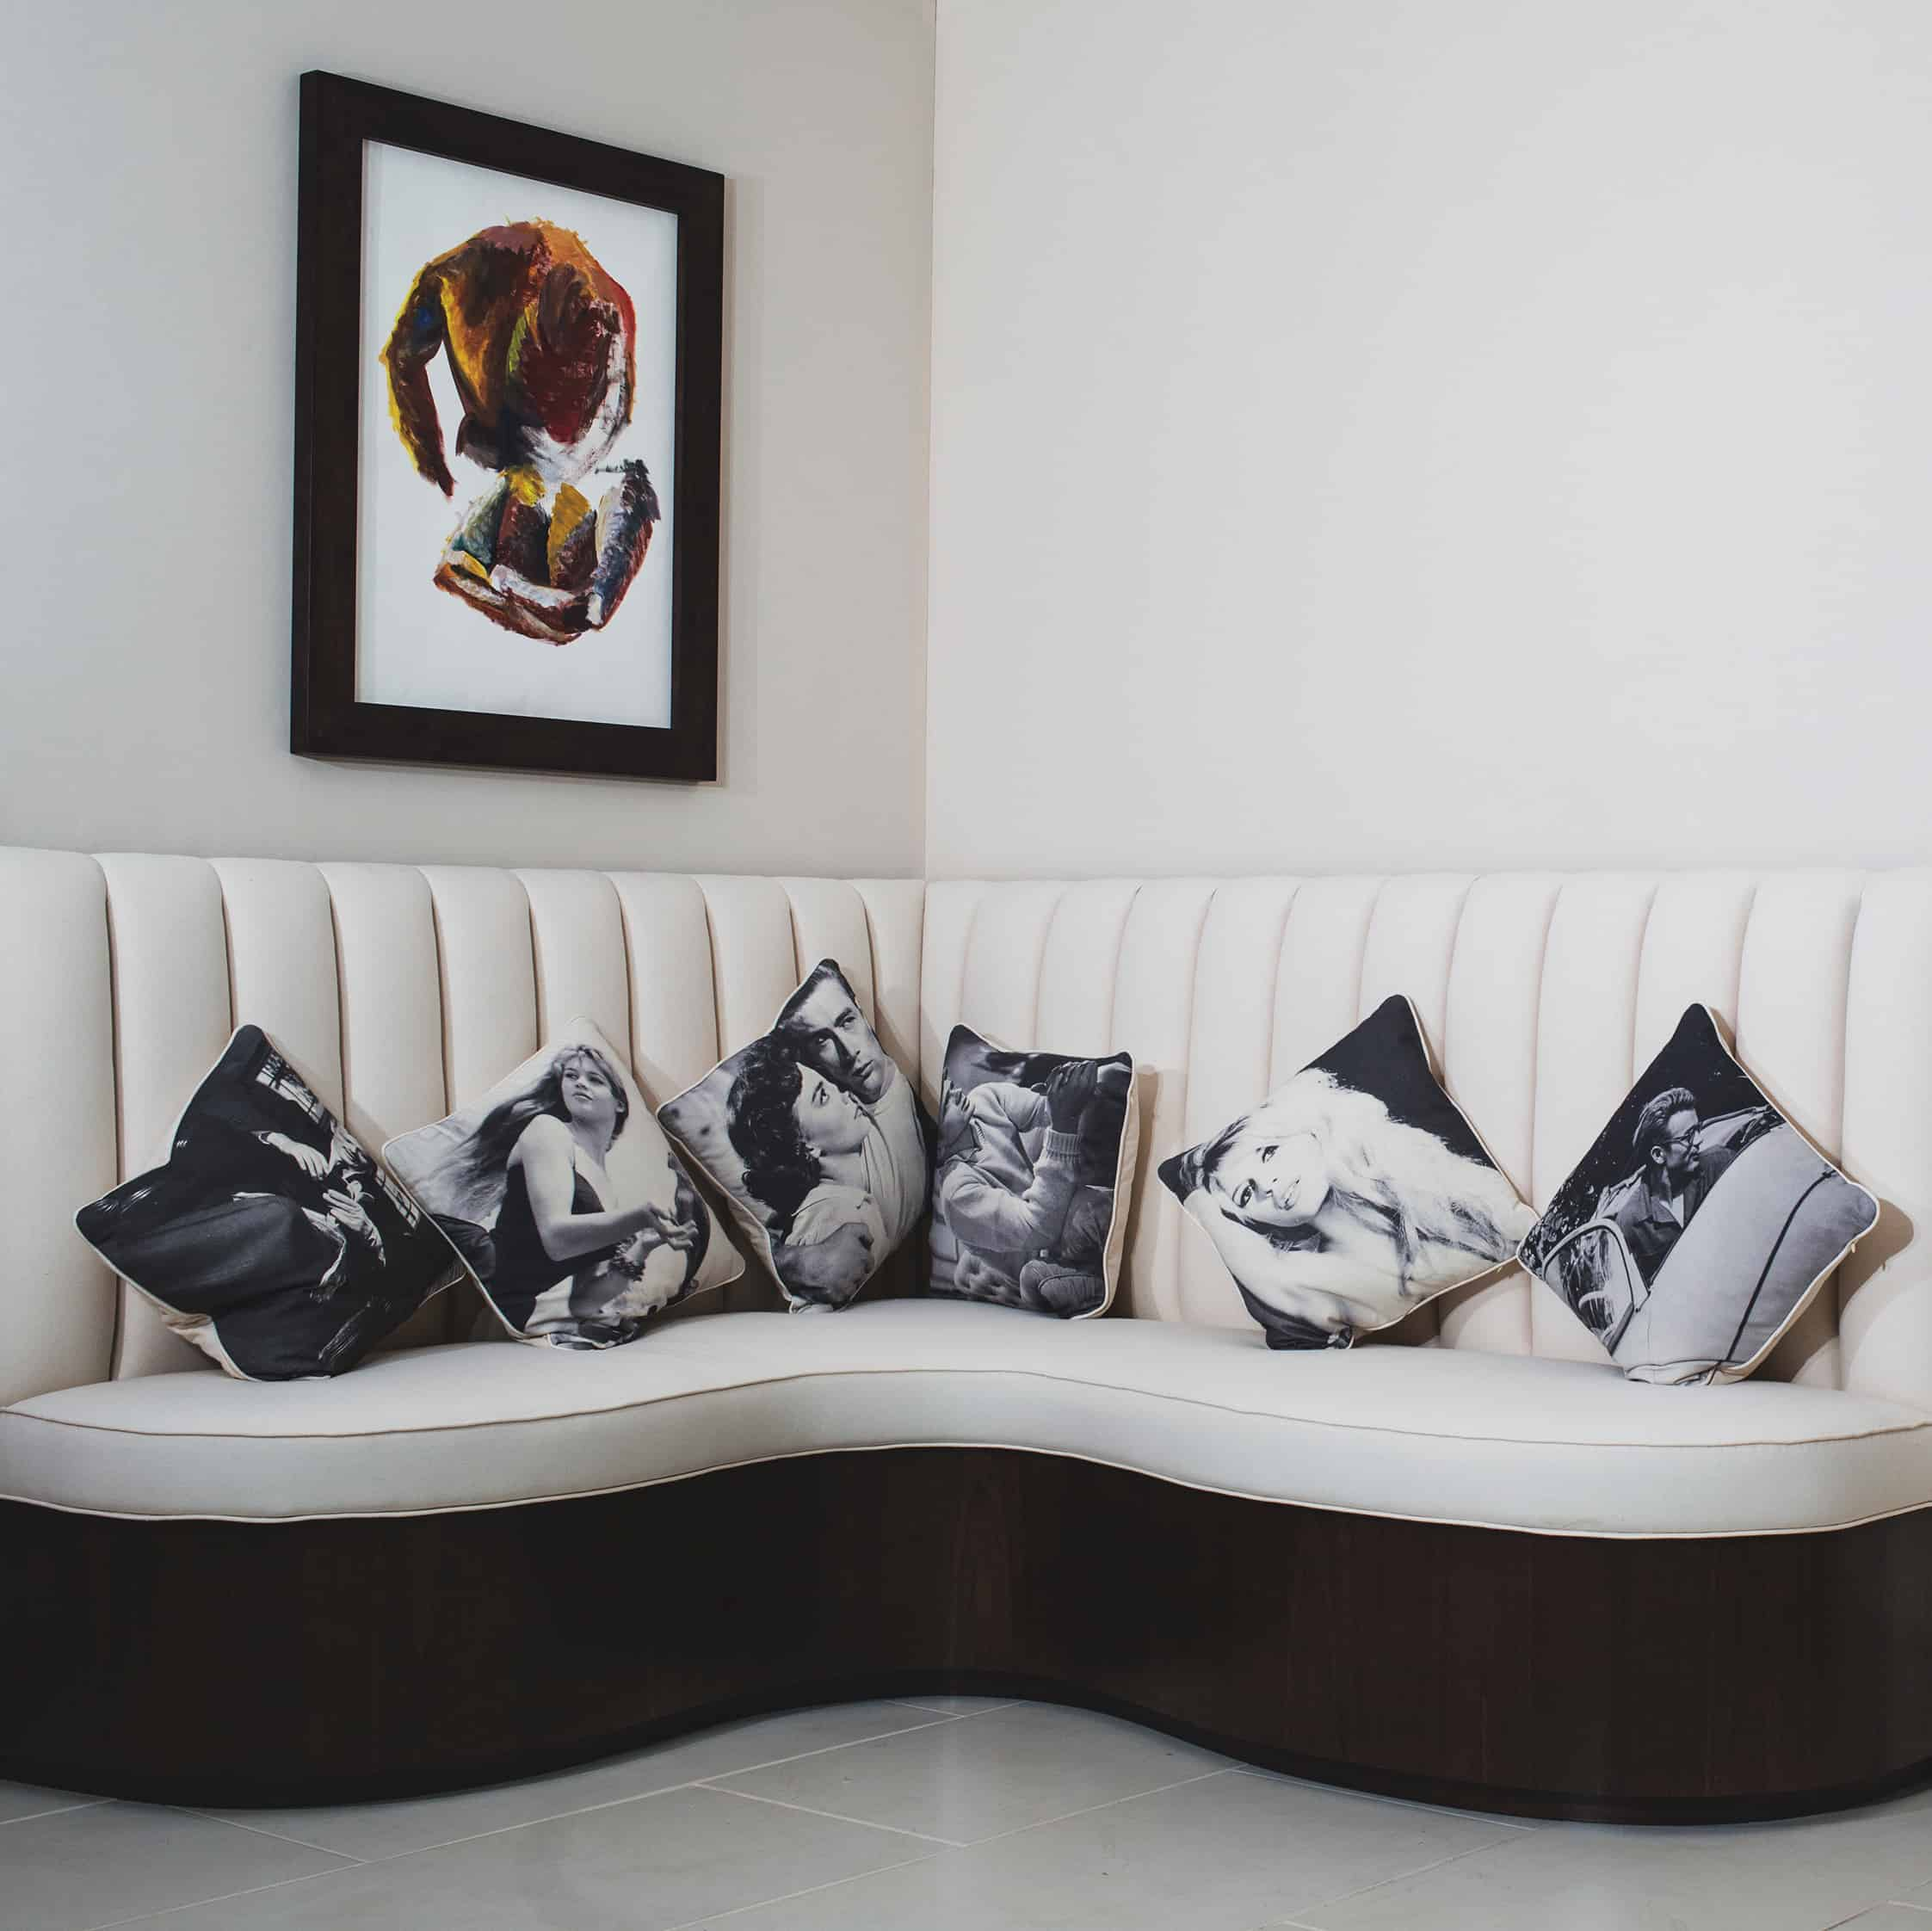 Famous faces scatter cushions, limited edition black and white portrait cushions